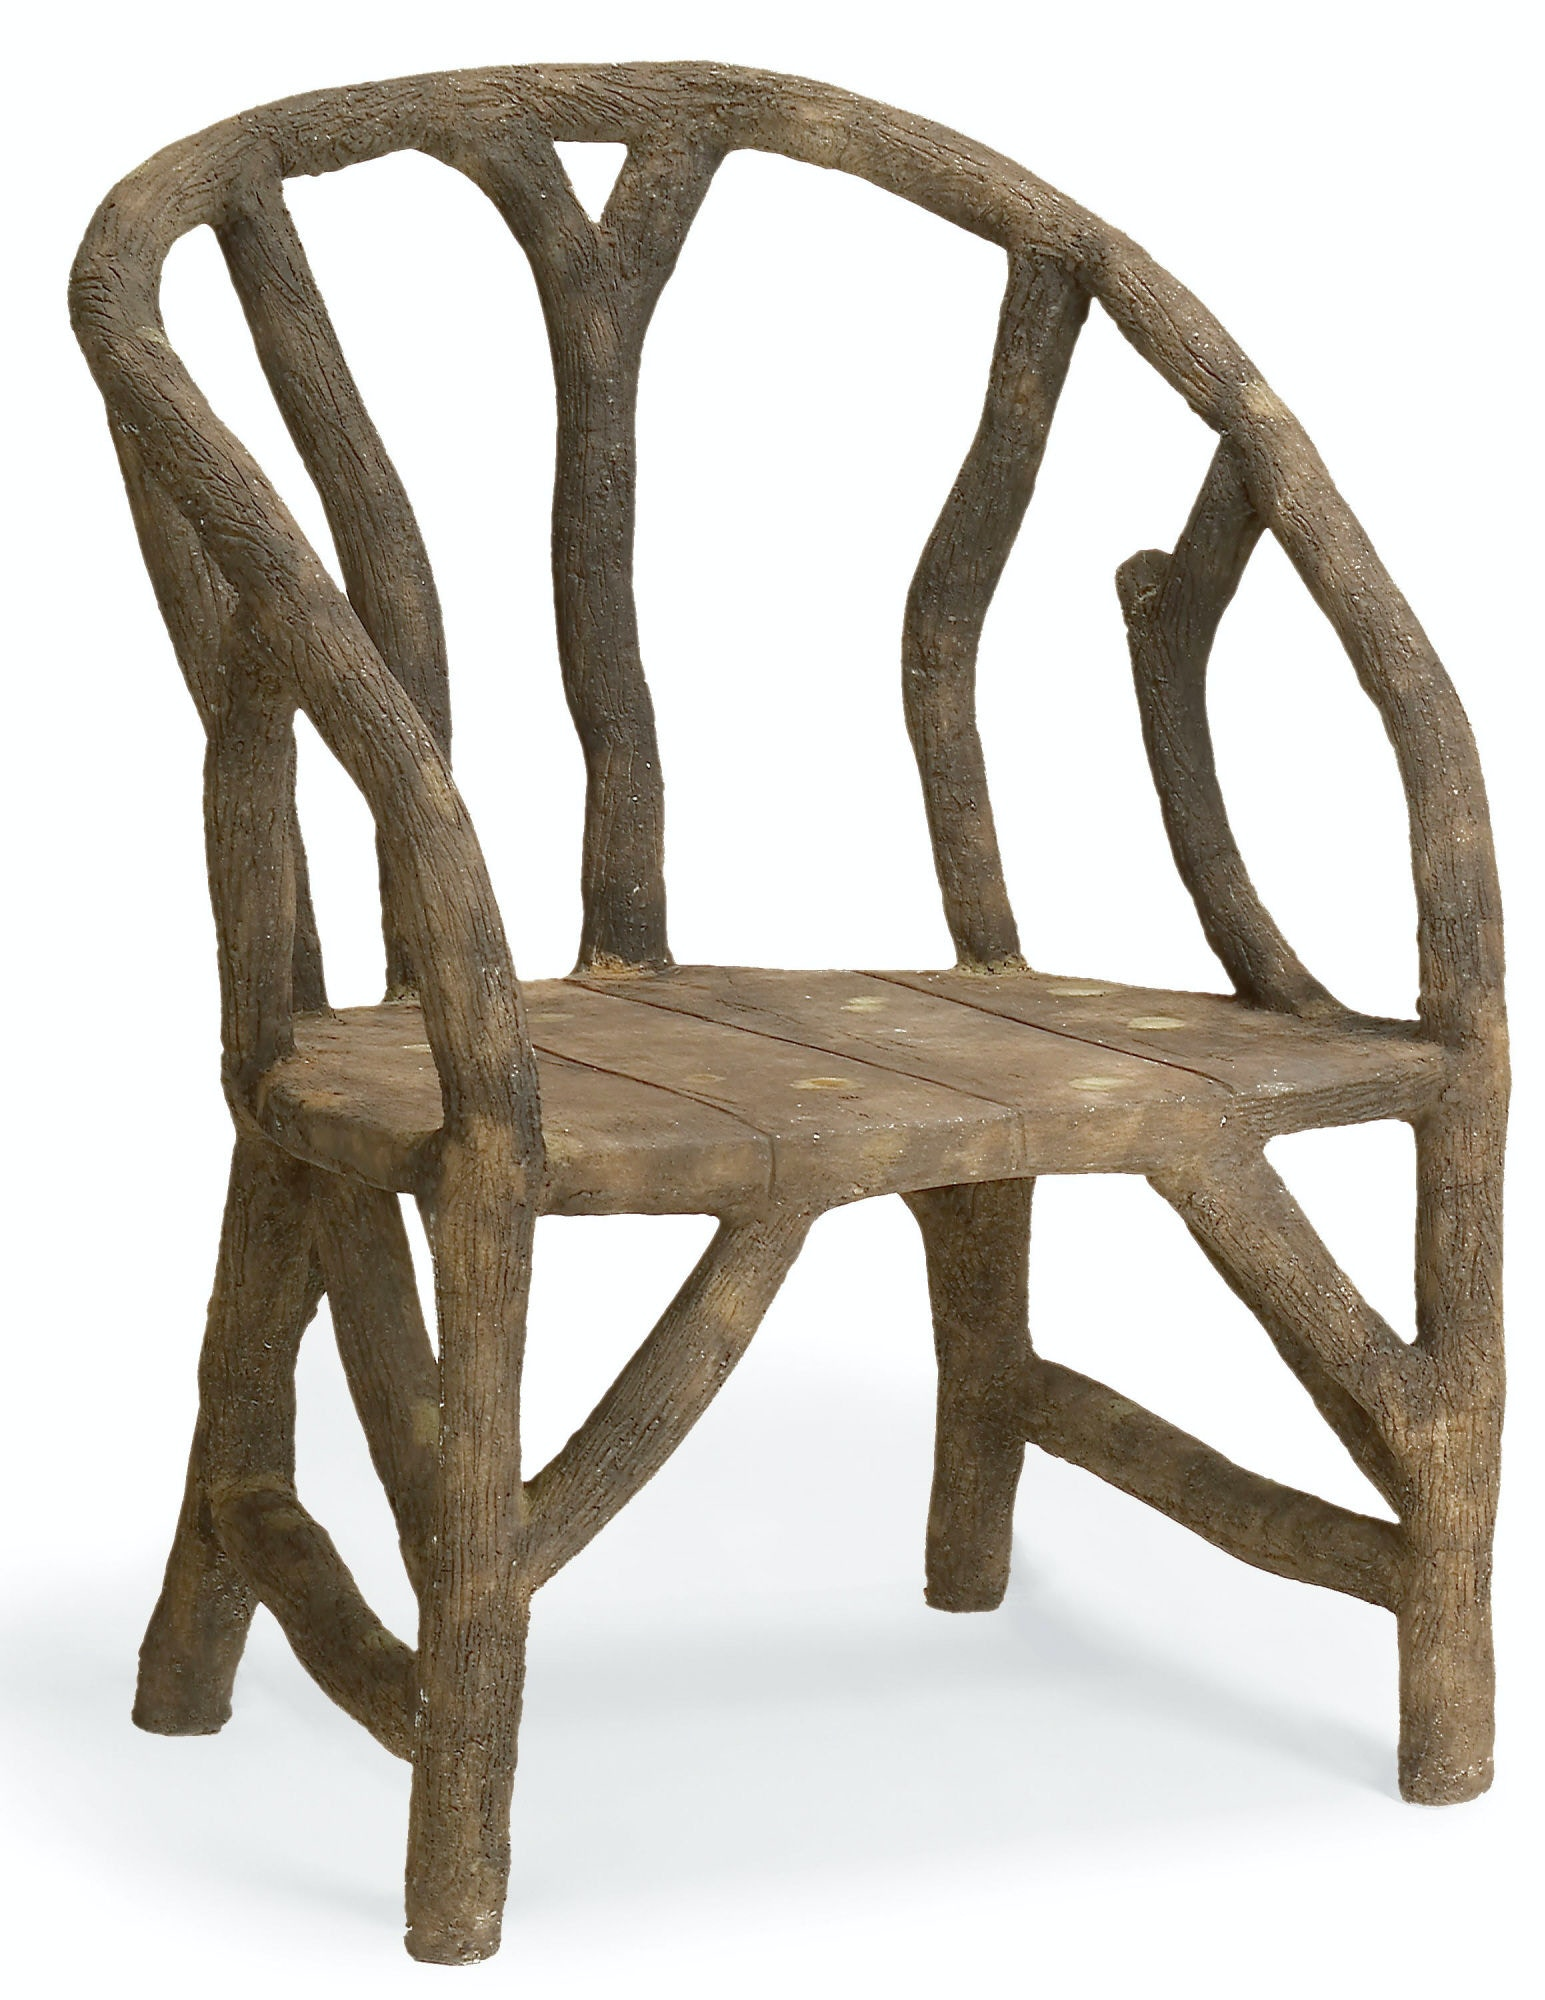 Currey And Company Outdoor/Patio Arbor Chair 2701   Swannu0027s Furniture    Tyler, TX